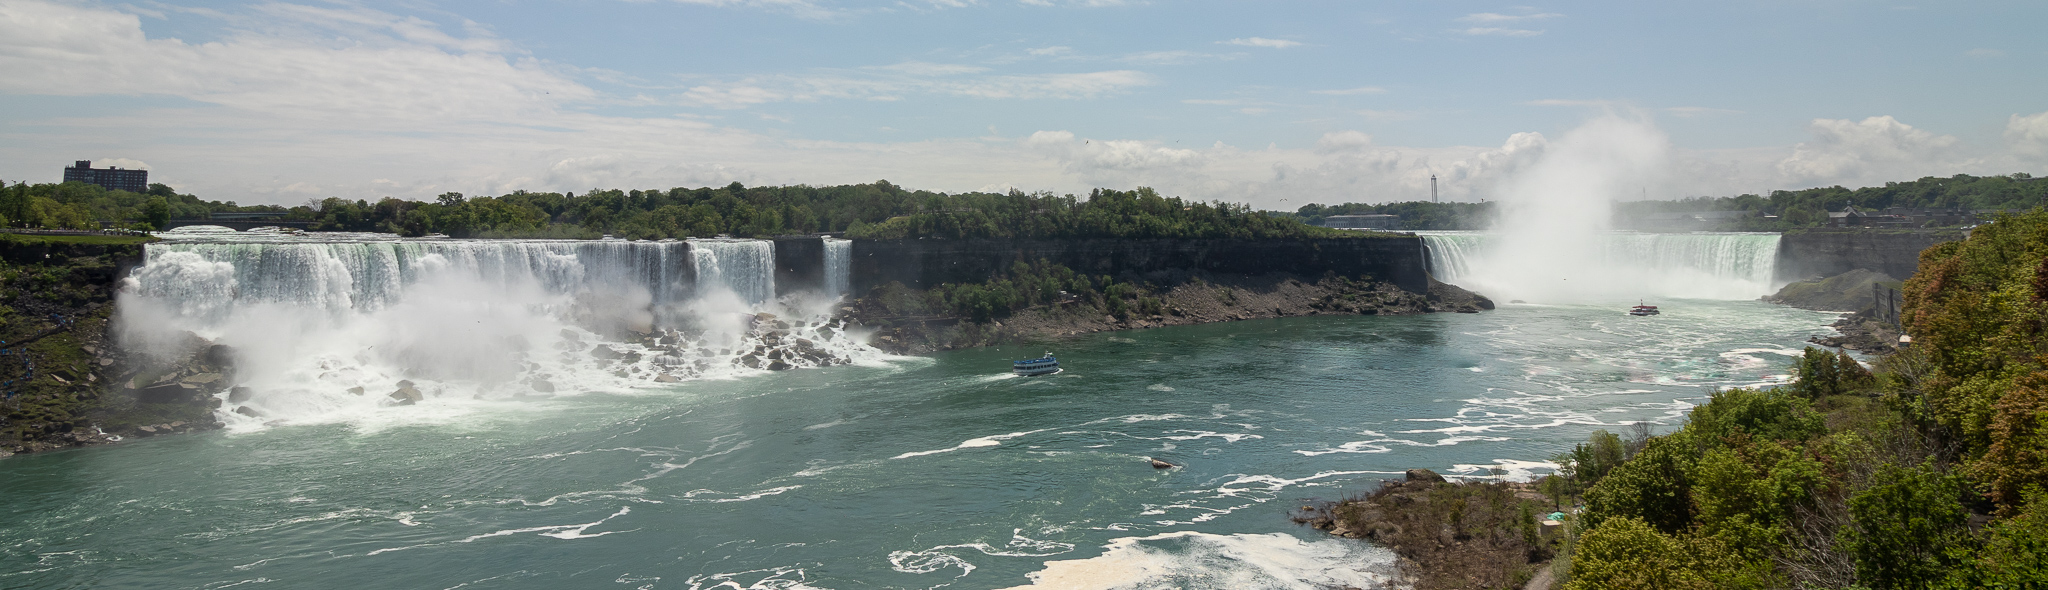 Imposing: the American Falls (left) and the Horseshoe Falls (right).